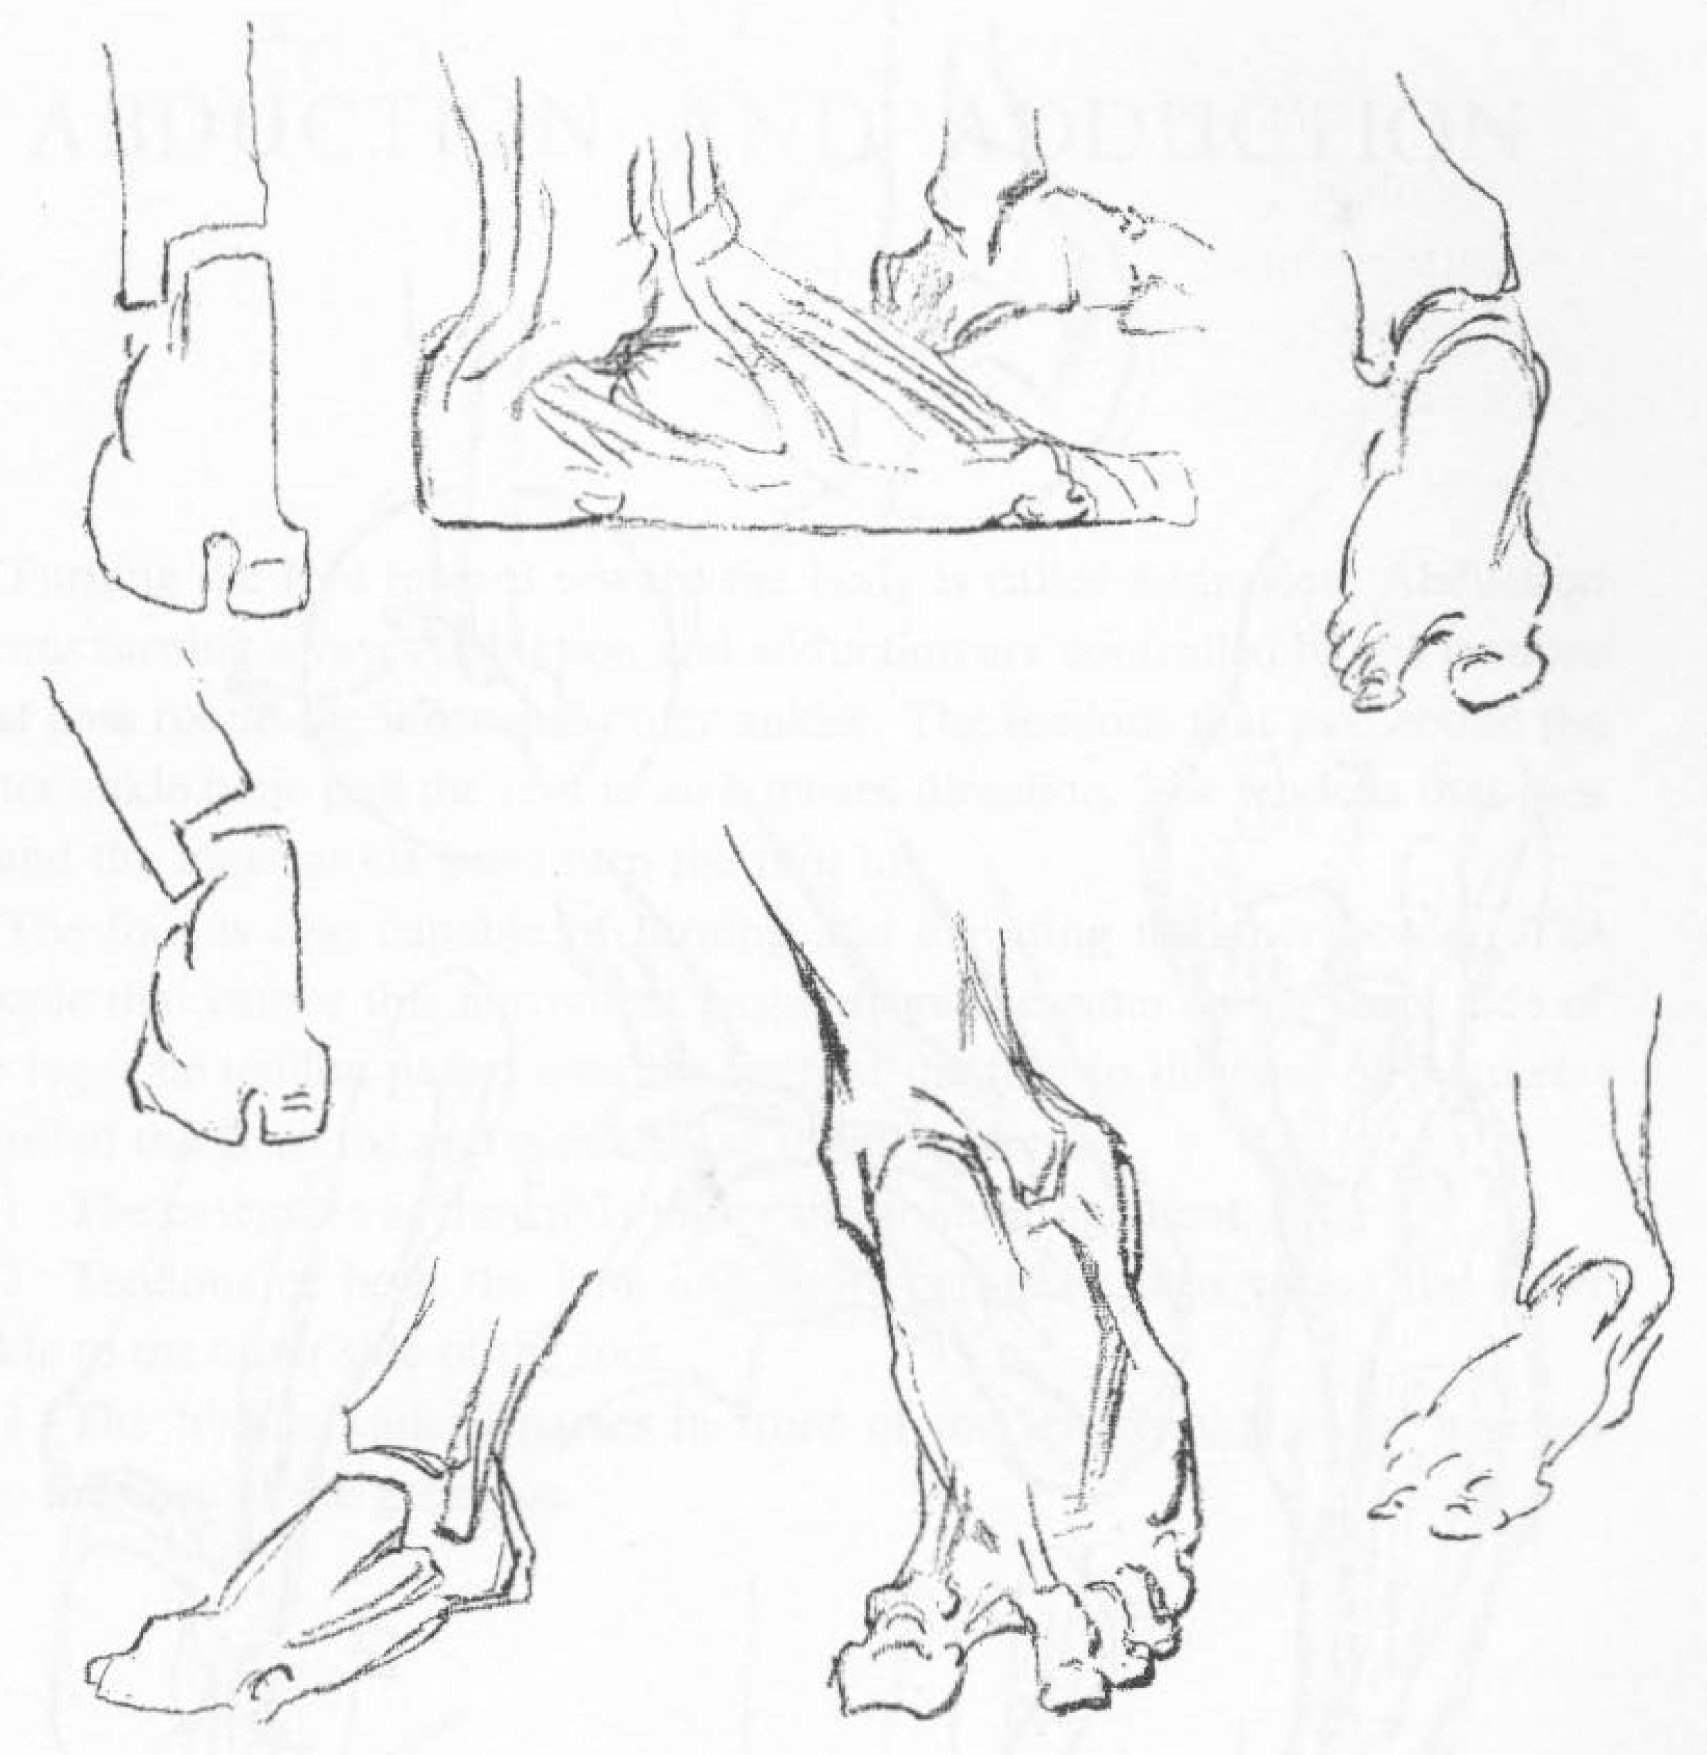 drawing-feet-03 - Movement of the Foot